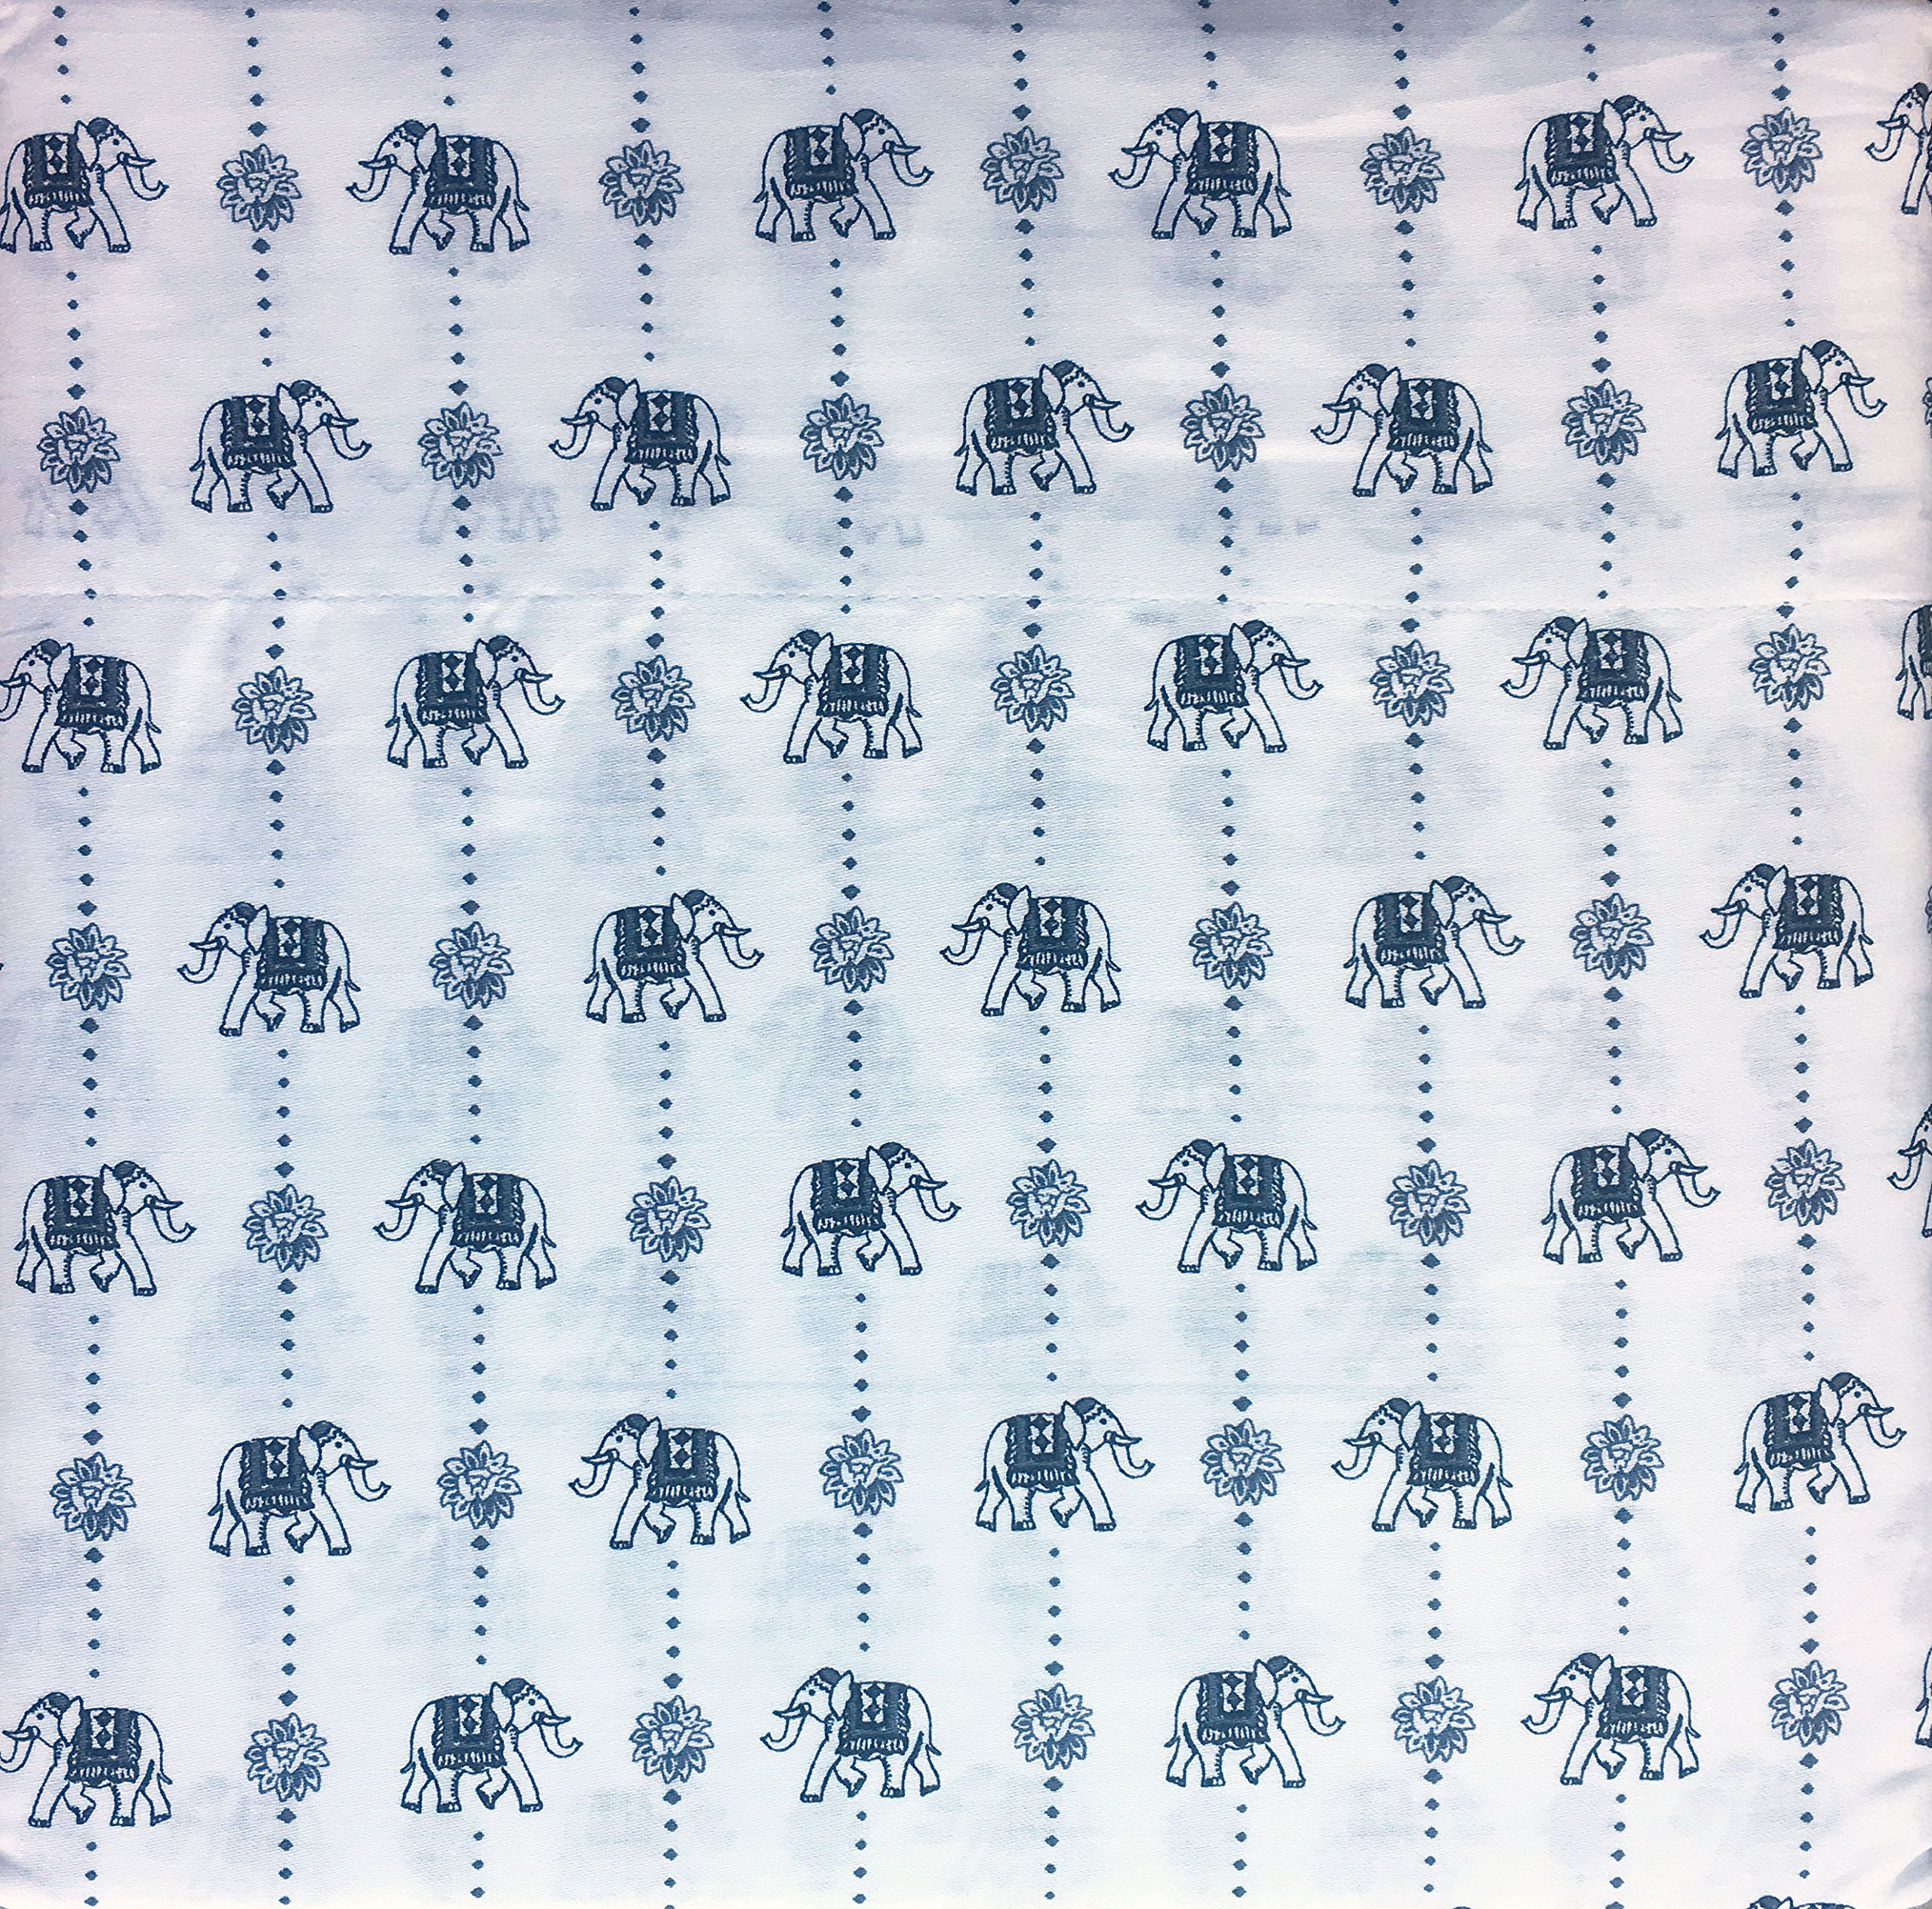 Classic Home Bedding Cotton King Size Bed Sheet Set, Decorated Elephants Geometric Blue on White Eastern Exotic Oriental, Extra Deep Pockets by The Classic Home (Image #1)